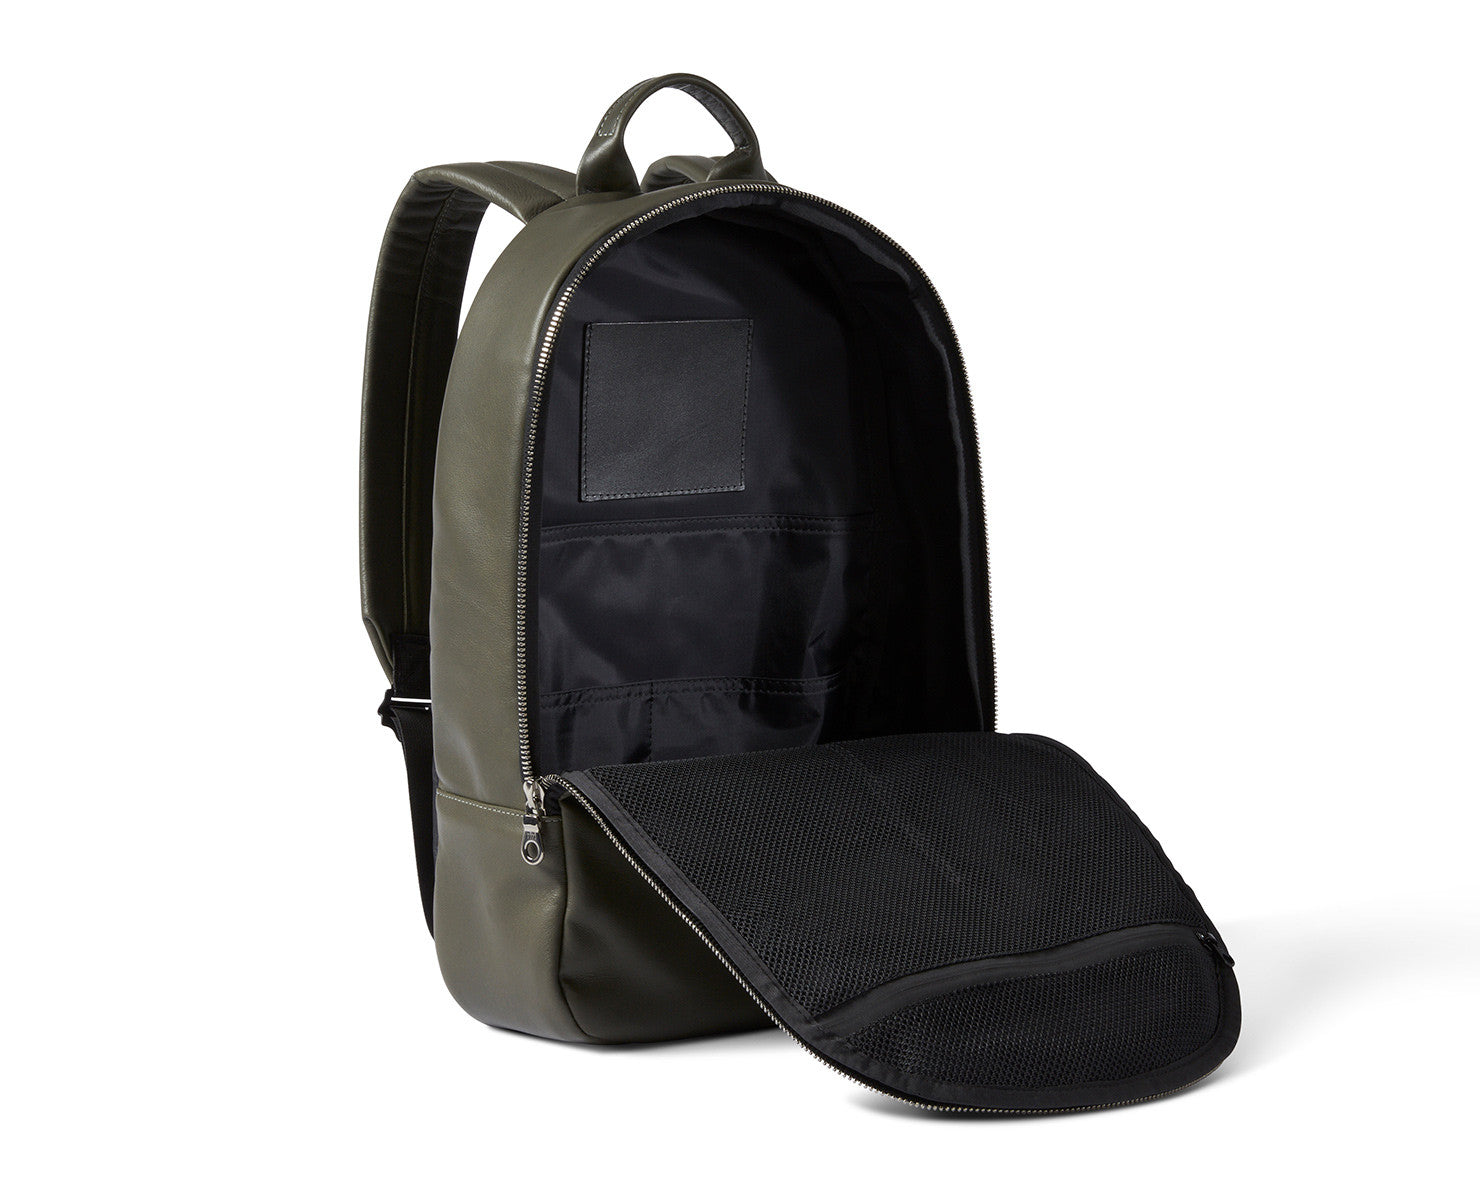 SPECIAL OPS BACKPACK 3.0 | KILLSPENCER® - Olive Leather